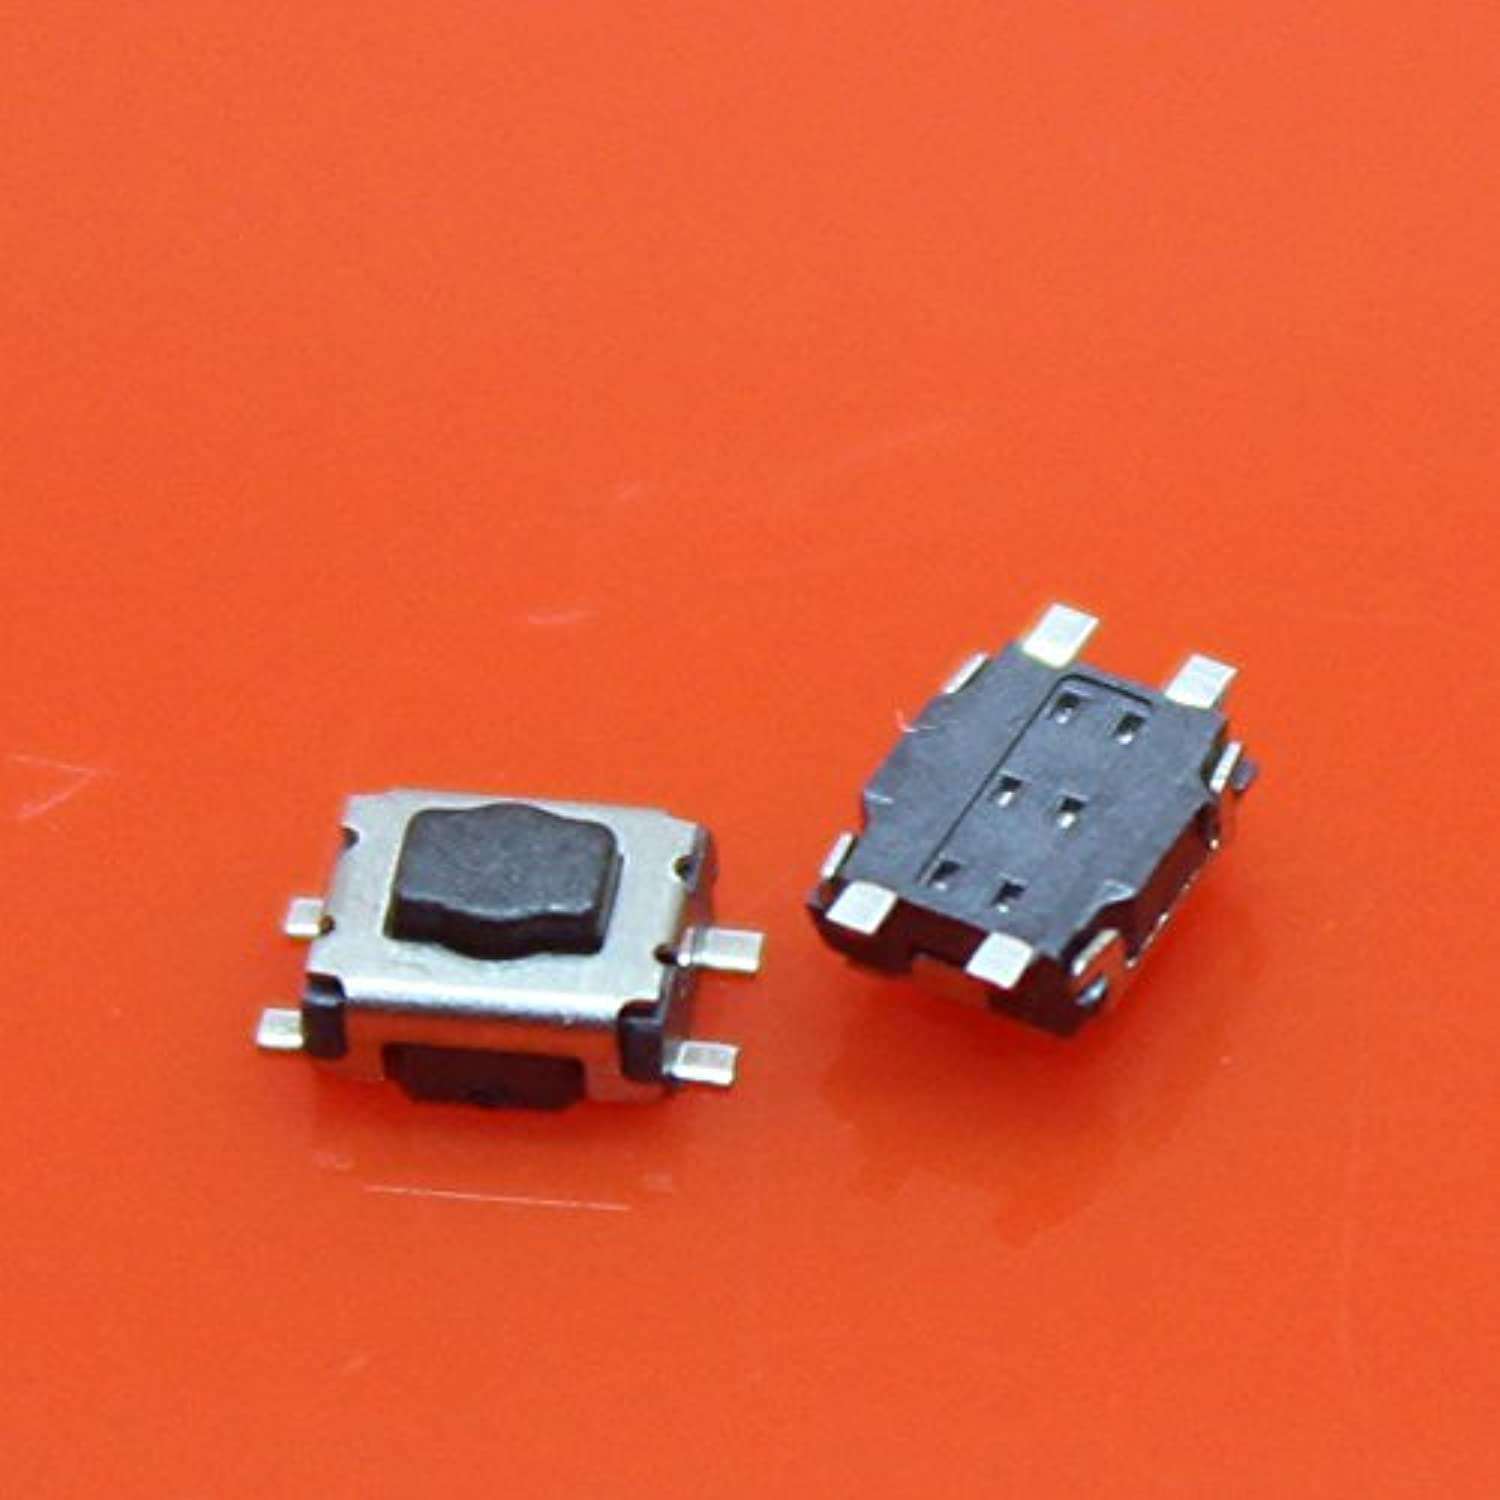 Cltgxdd Switch for Peugeot 307 308   Citroen Triumph Sega car Remote Control Key Touch Button Switch